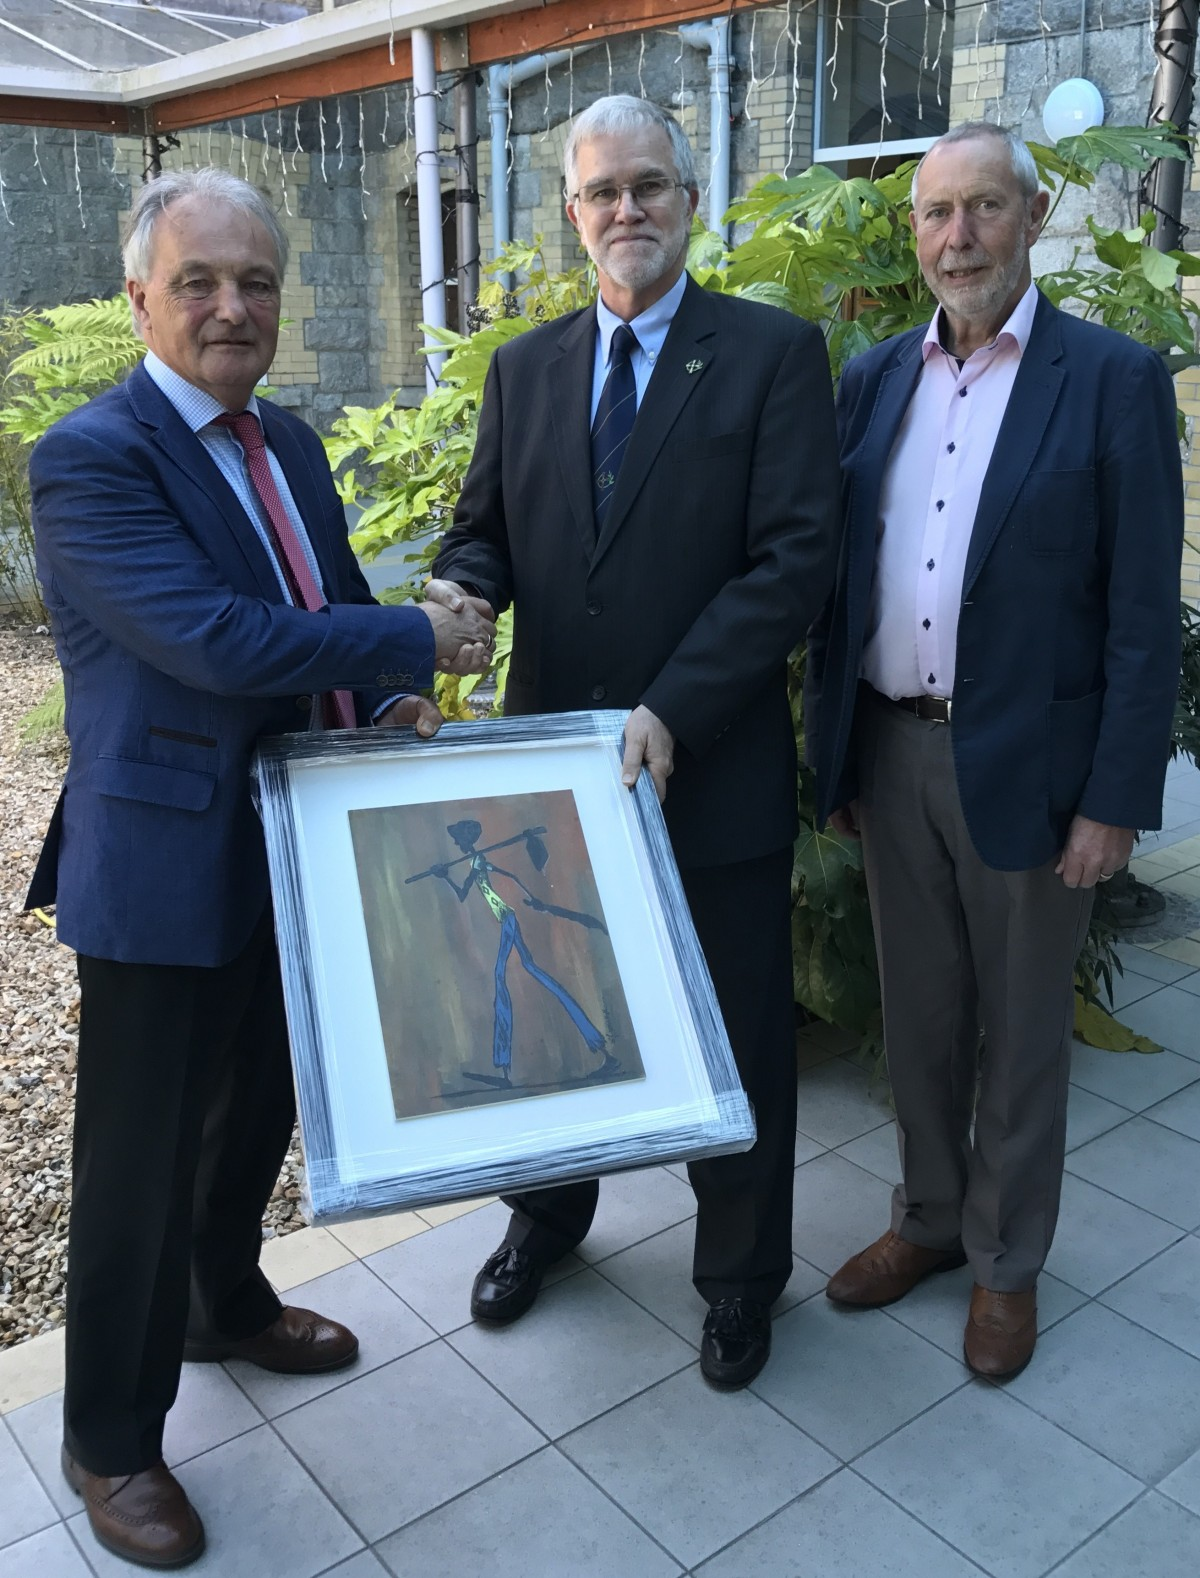 Br. Hugh O'Neill, Congregation Leader presents a painting from the Ruben Centre, Kenya to Matt Breen (pictured left) on the occasion of his retirement as chair of Edmund Rice Development.